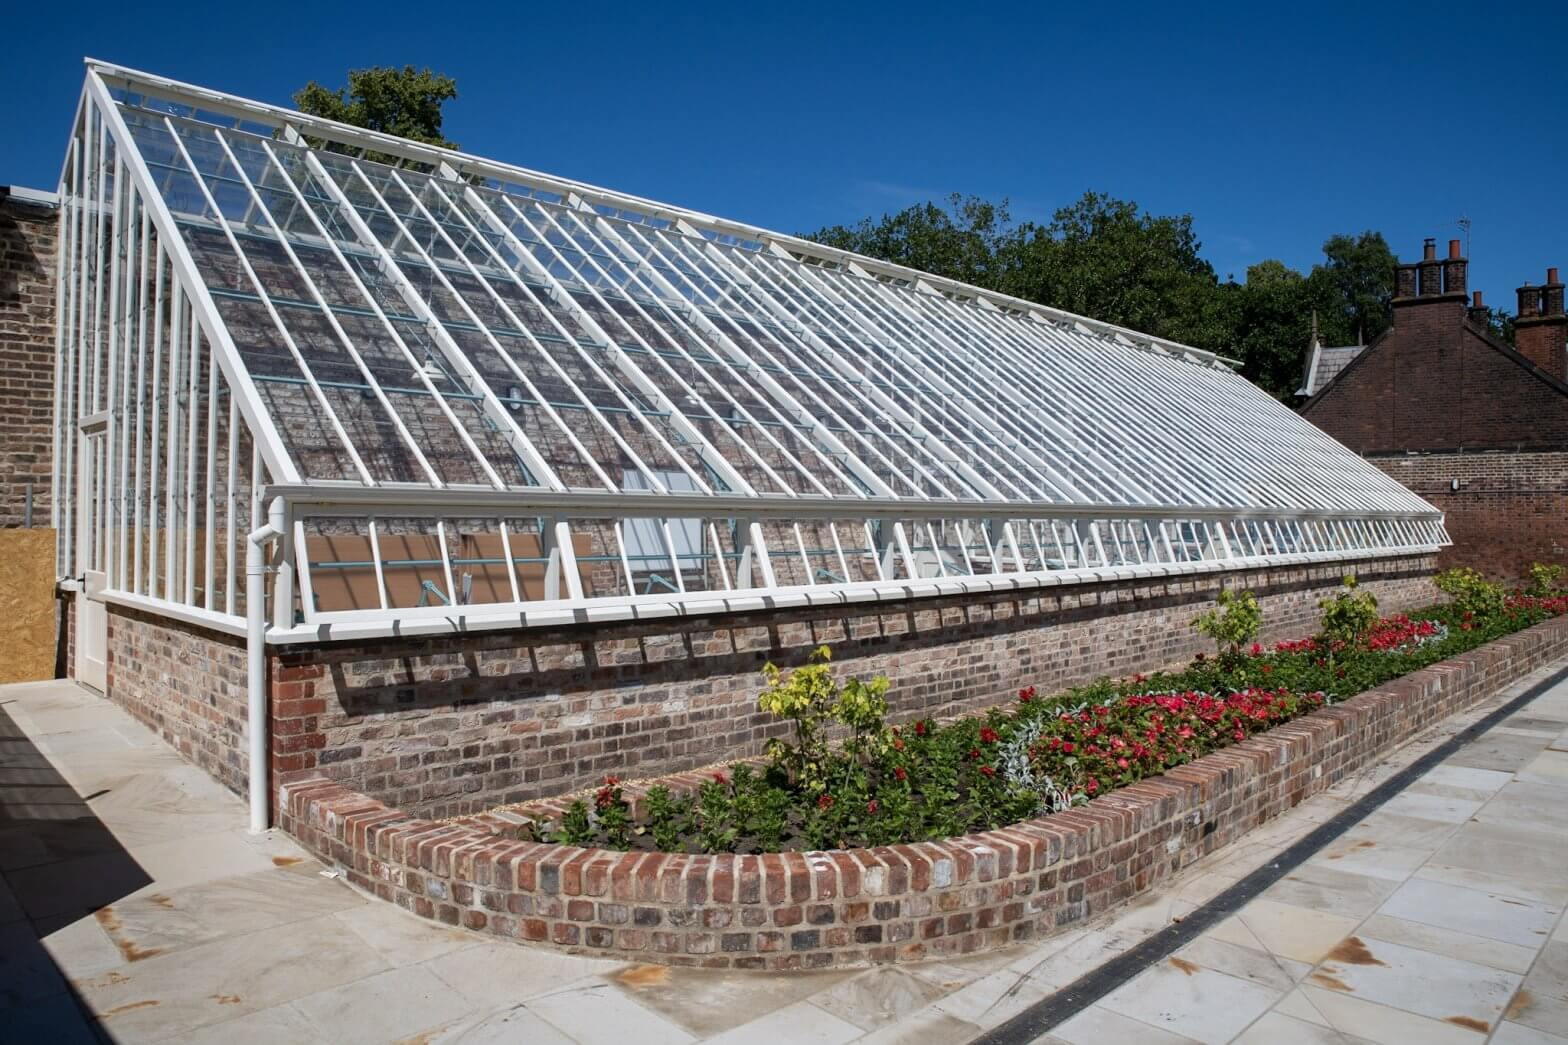 Glasshouse at Walton Hall Gardens